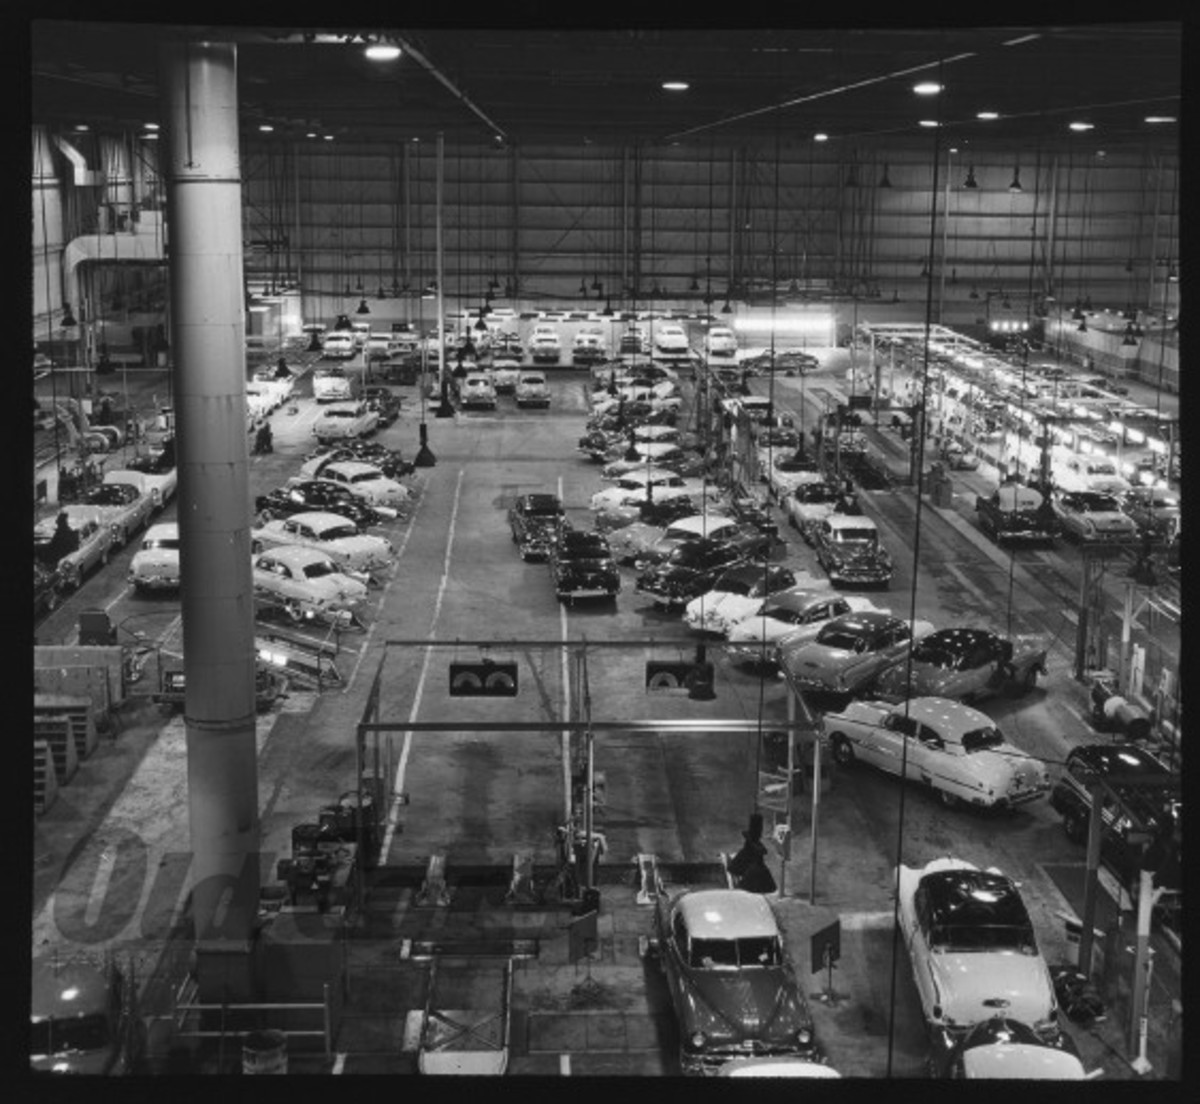 Completed Oldsmobile, Pontiac and Buick automobiles at the end of the line appear to be awaiting their turn on the testing apparatus at the bottom left.